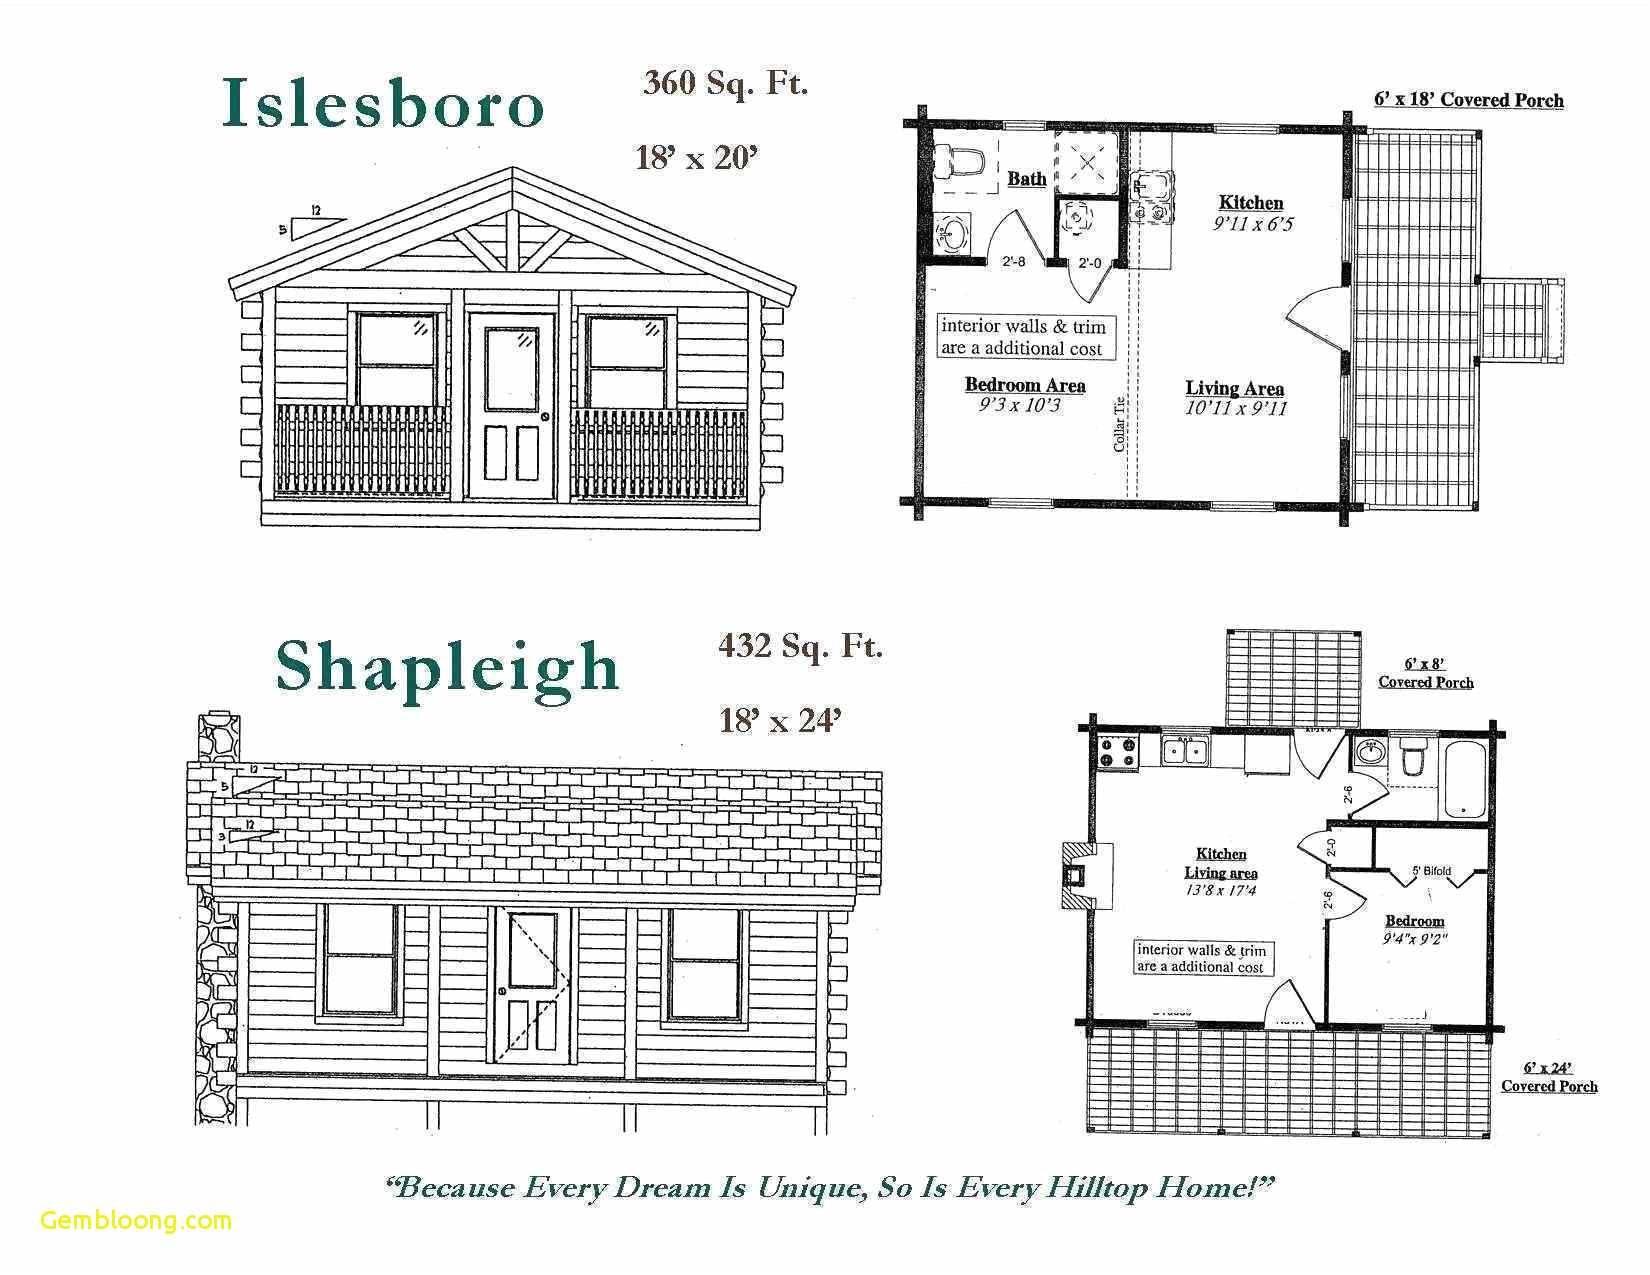 modular homes plans luxury modular home plans and prices lovely floor plans 0d awesome modular